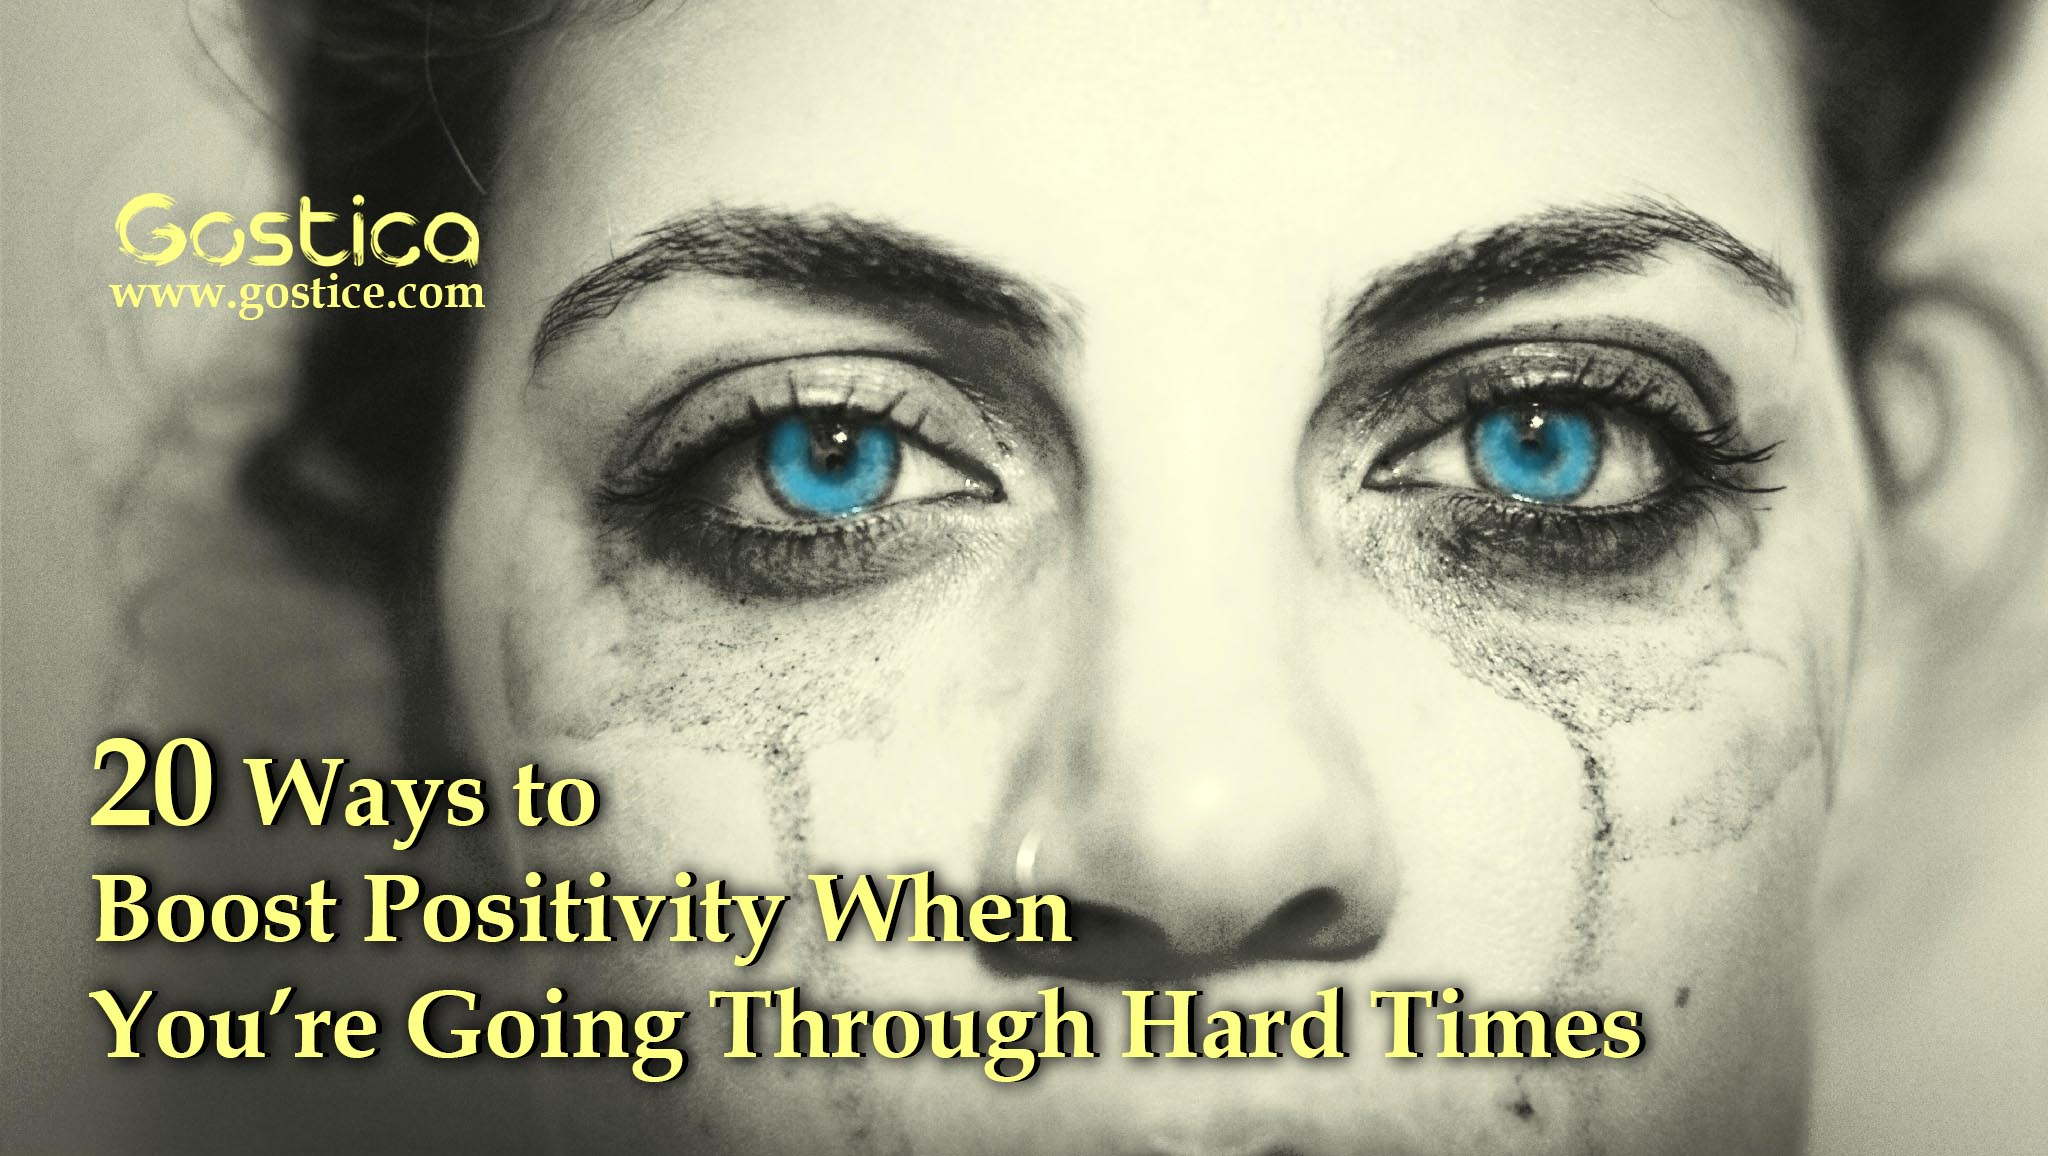 20-Ways-to-Boost-Positivity-When-You're-Going-Through-Hard-Times.jpg